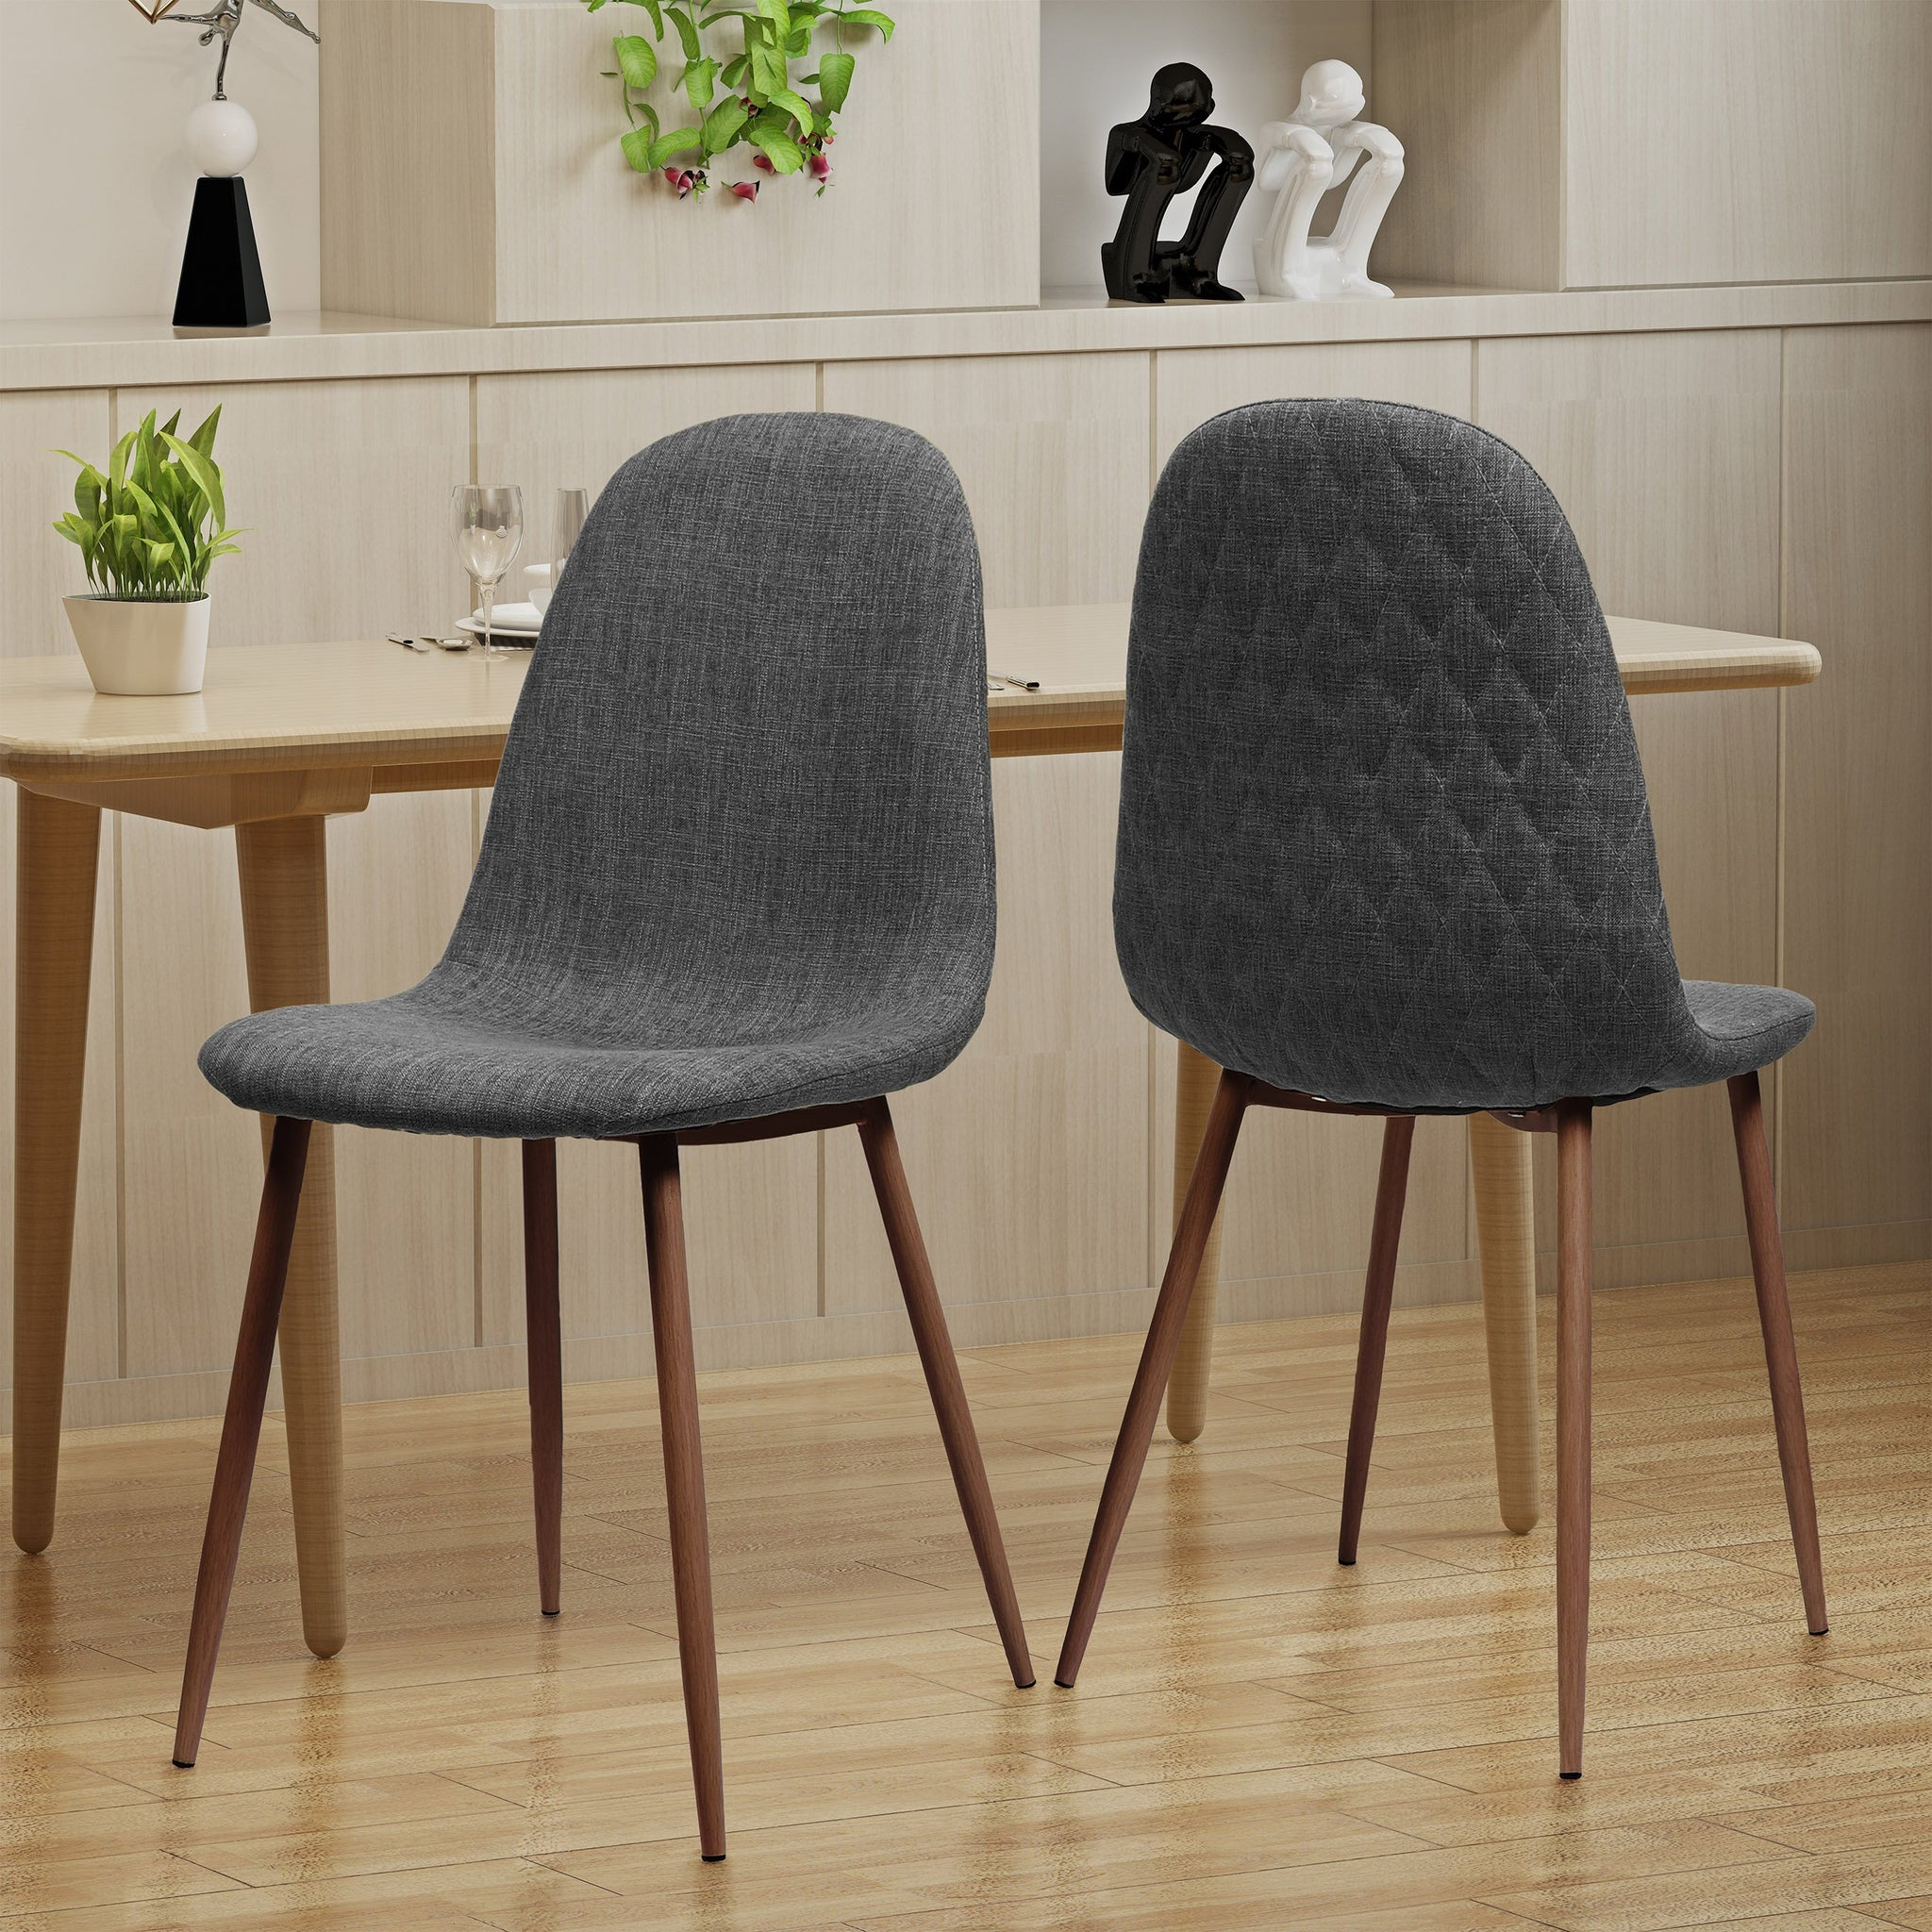 Cabarrus Mid Century Fabric Dining Chairs With Wood Finished Legs (Set Of 2)